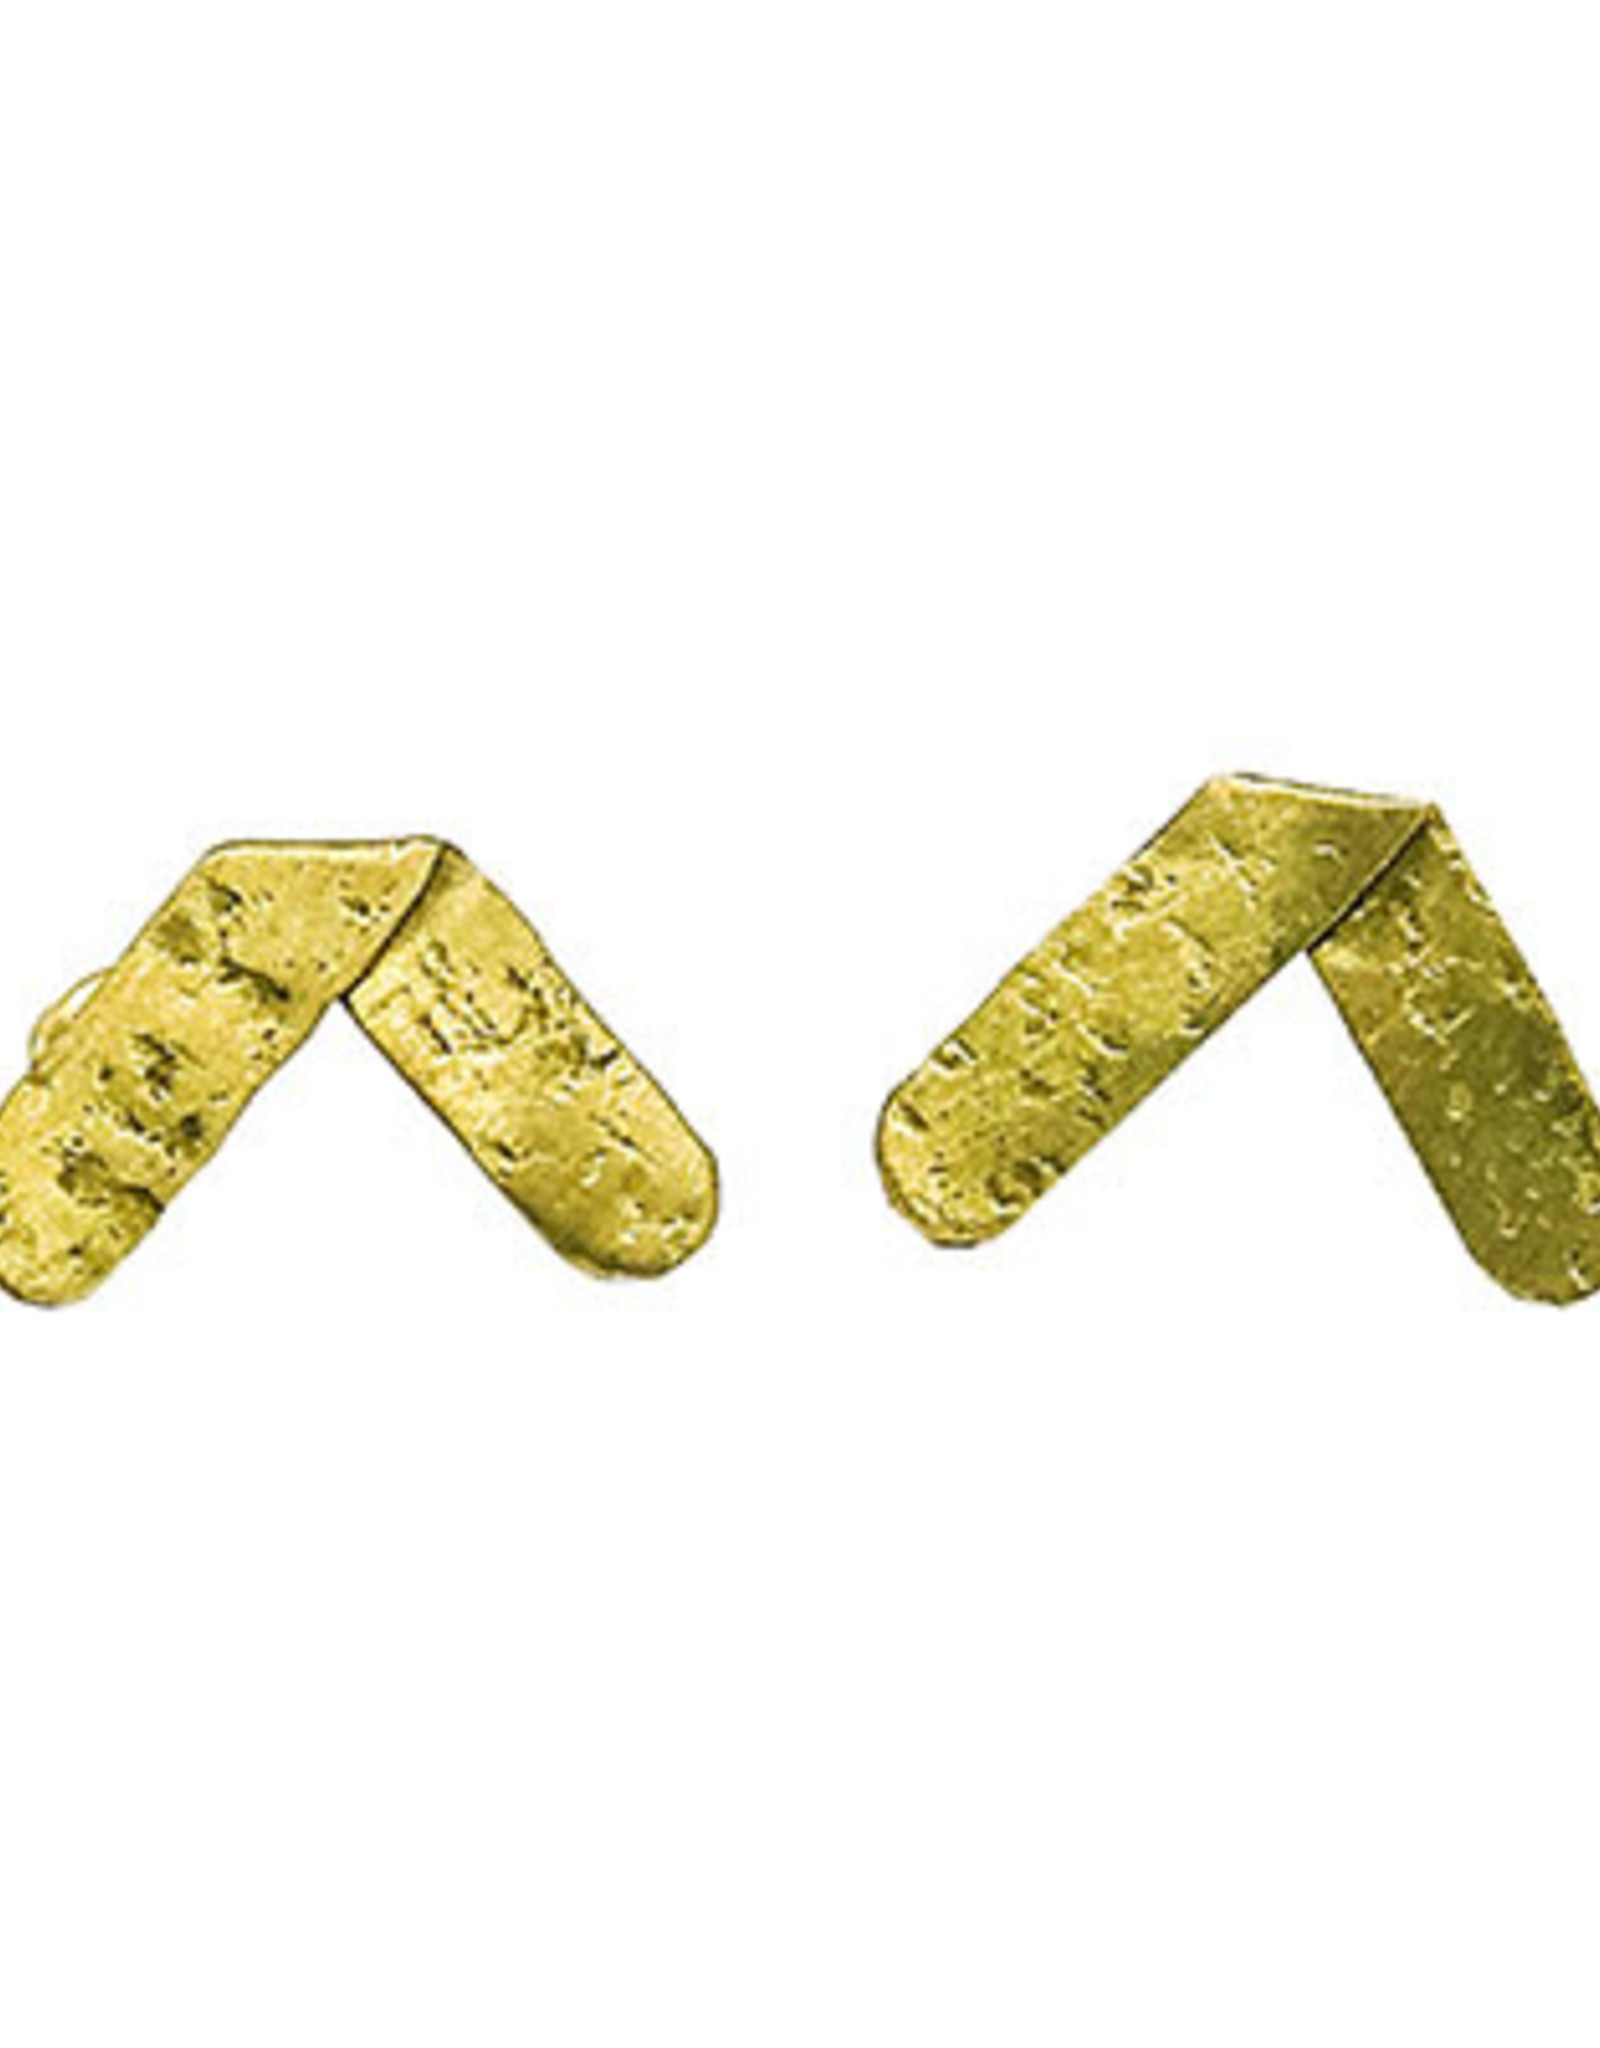 Axis Hammered Earrings - Gold